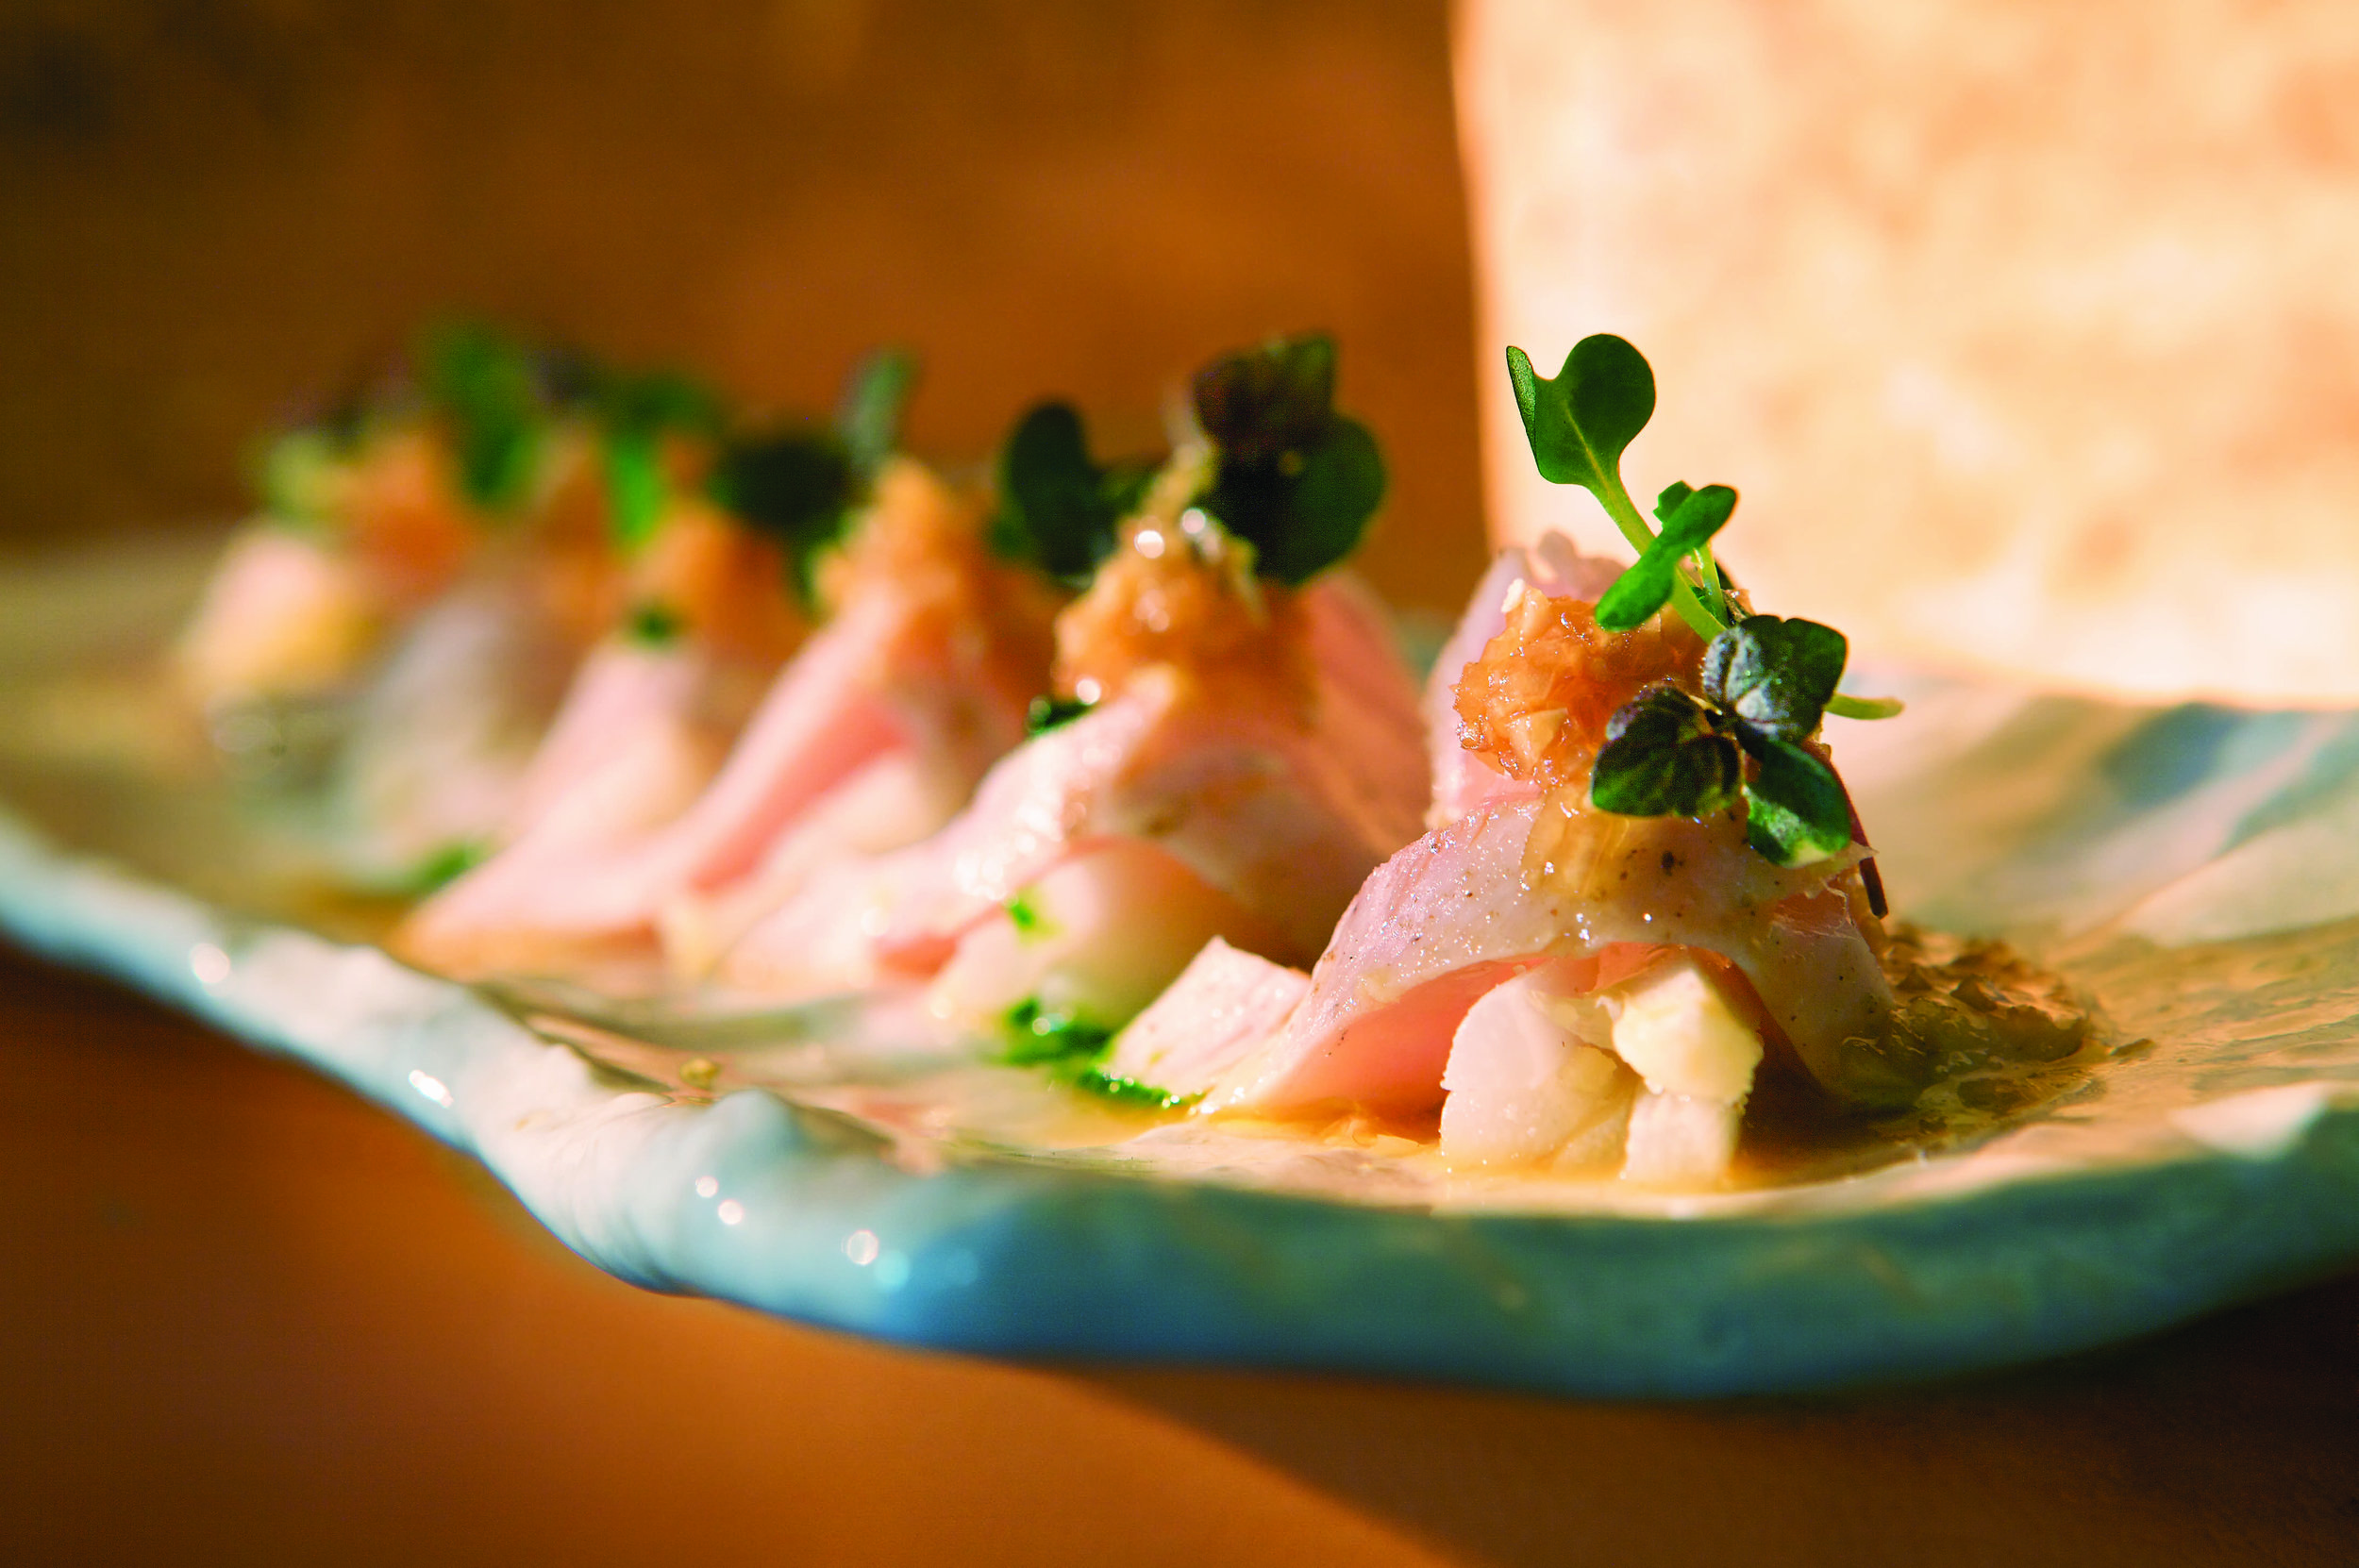 Butterfish-Tataki-with-White-Asparagus-and-Yuzu-copy.jpg